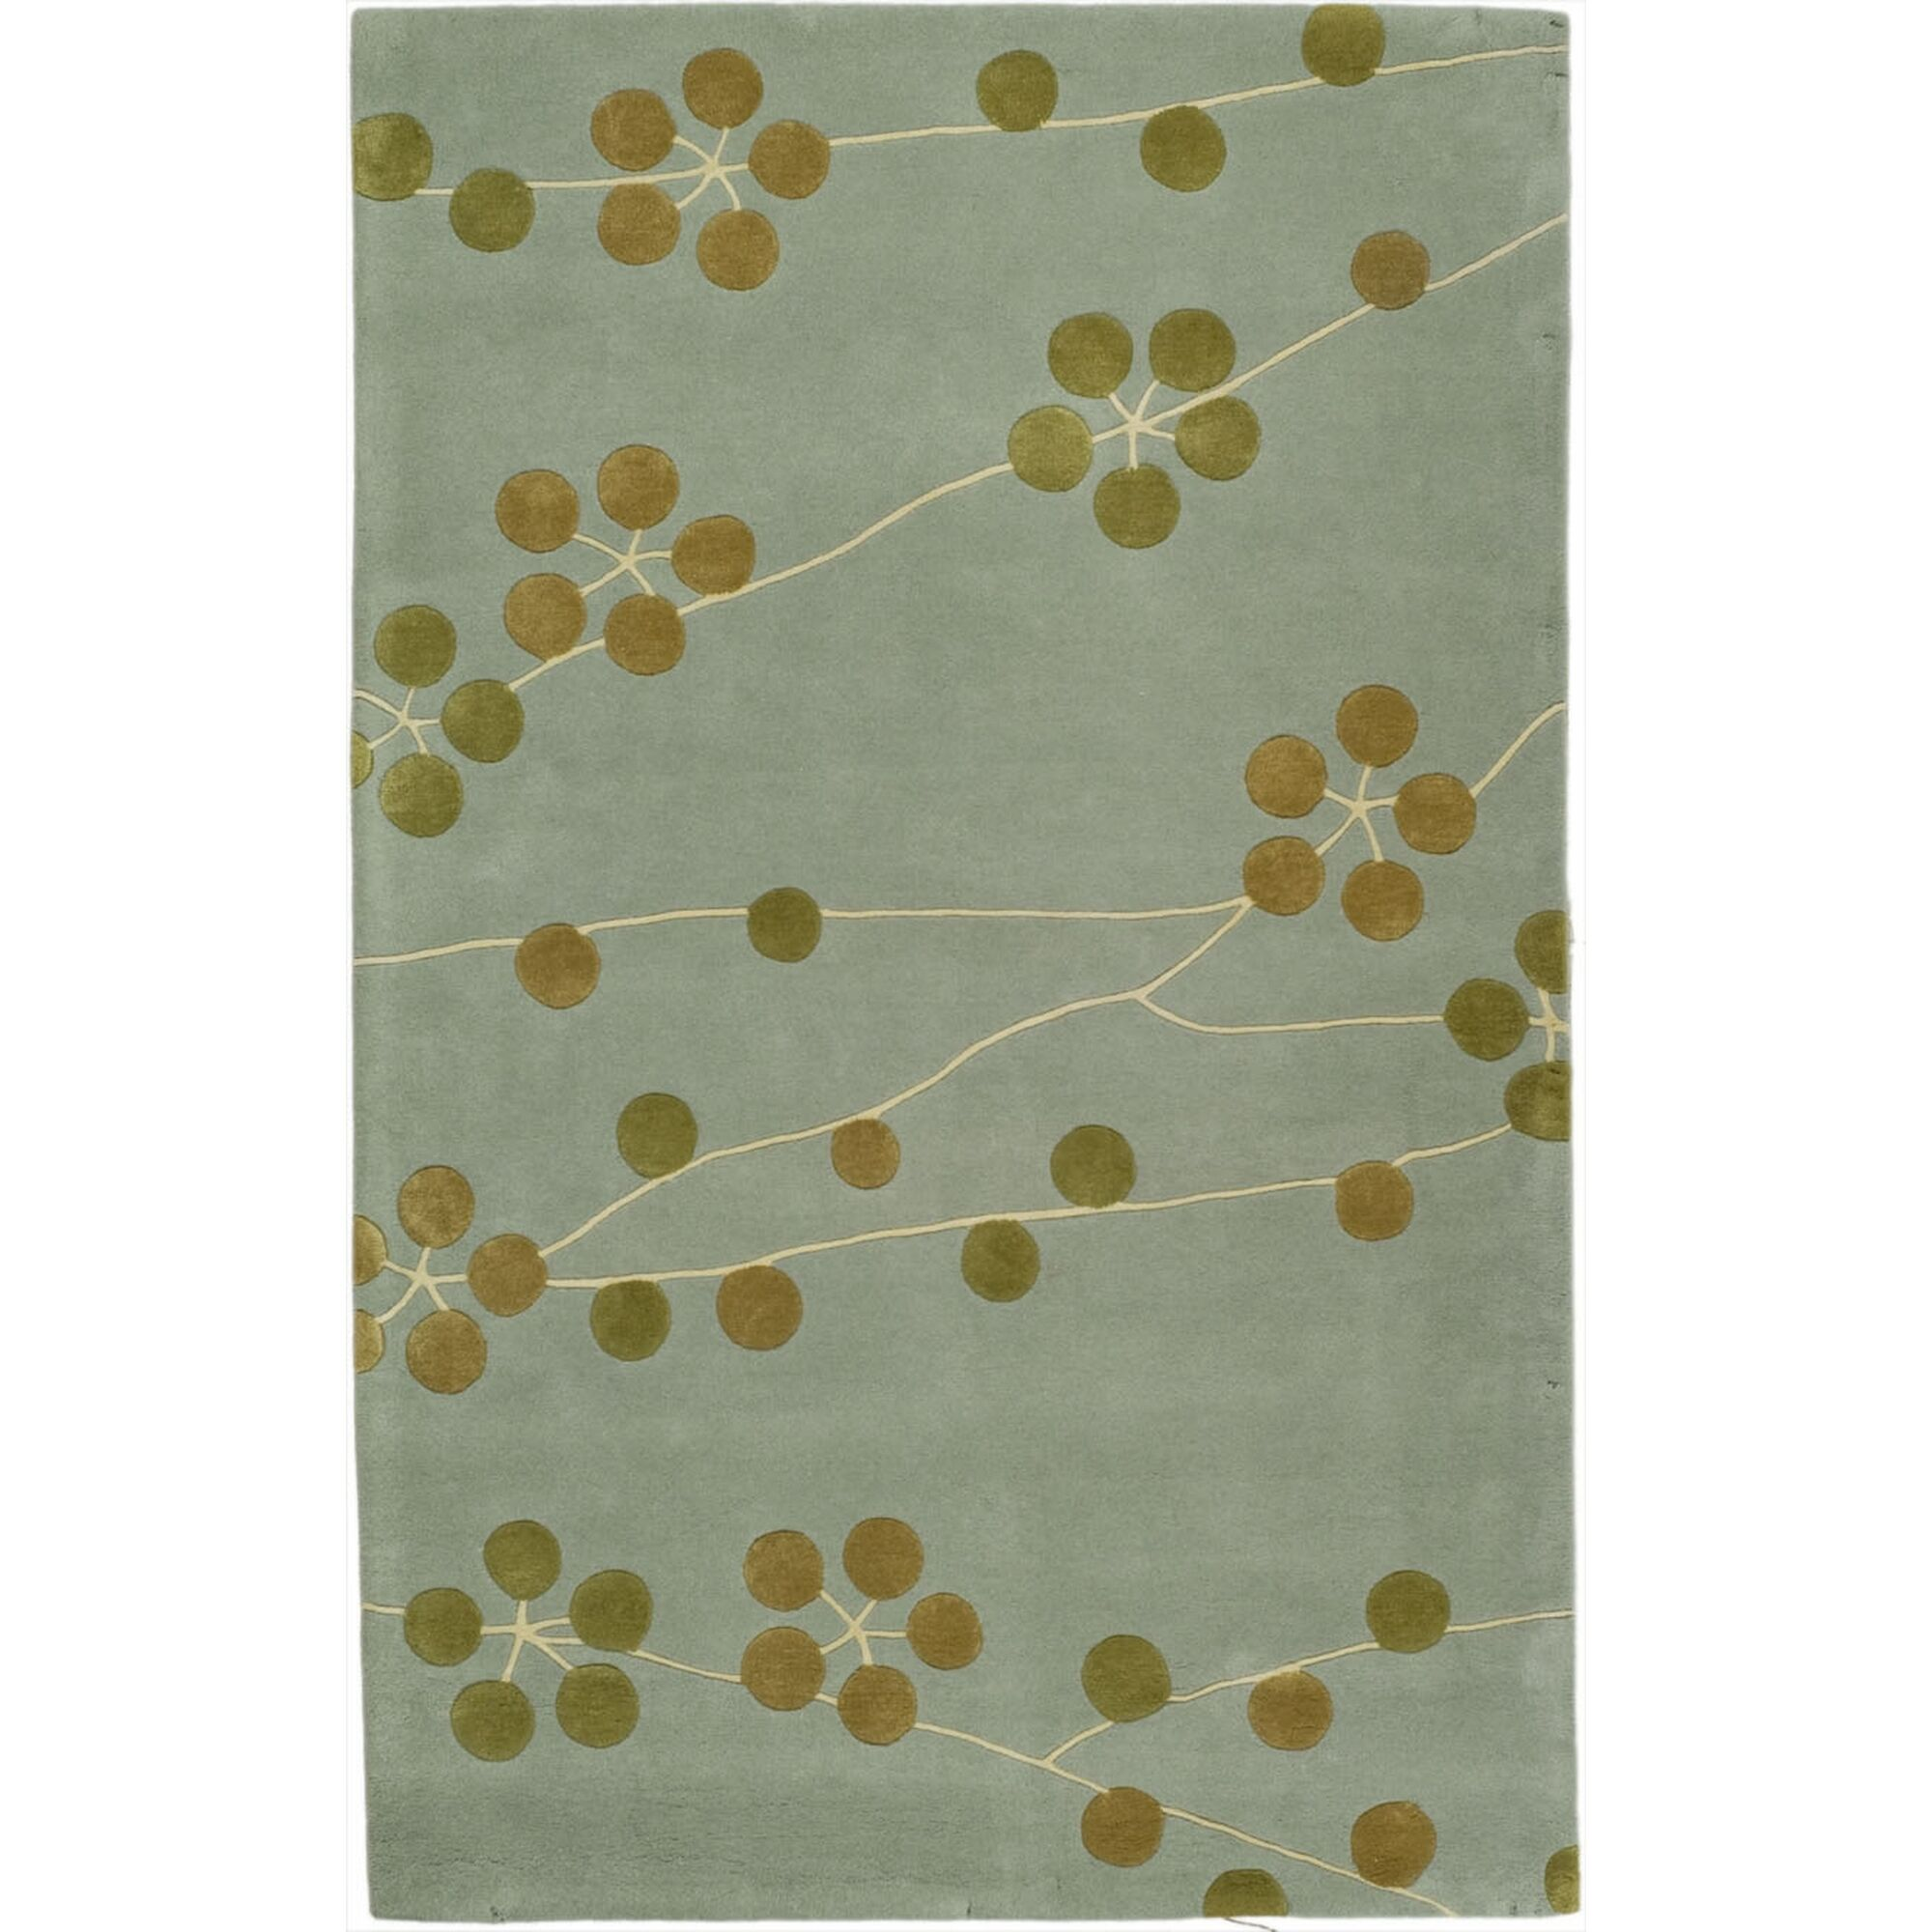 Armstrong Light Blue/Gold Area Rug Rug Size: Rectangle 5' x 8'